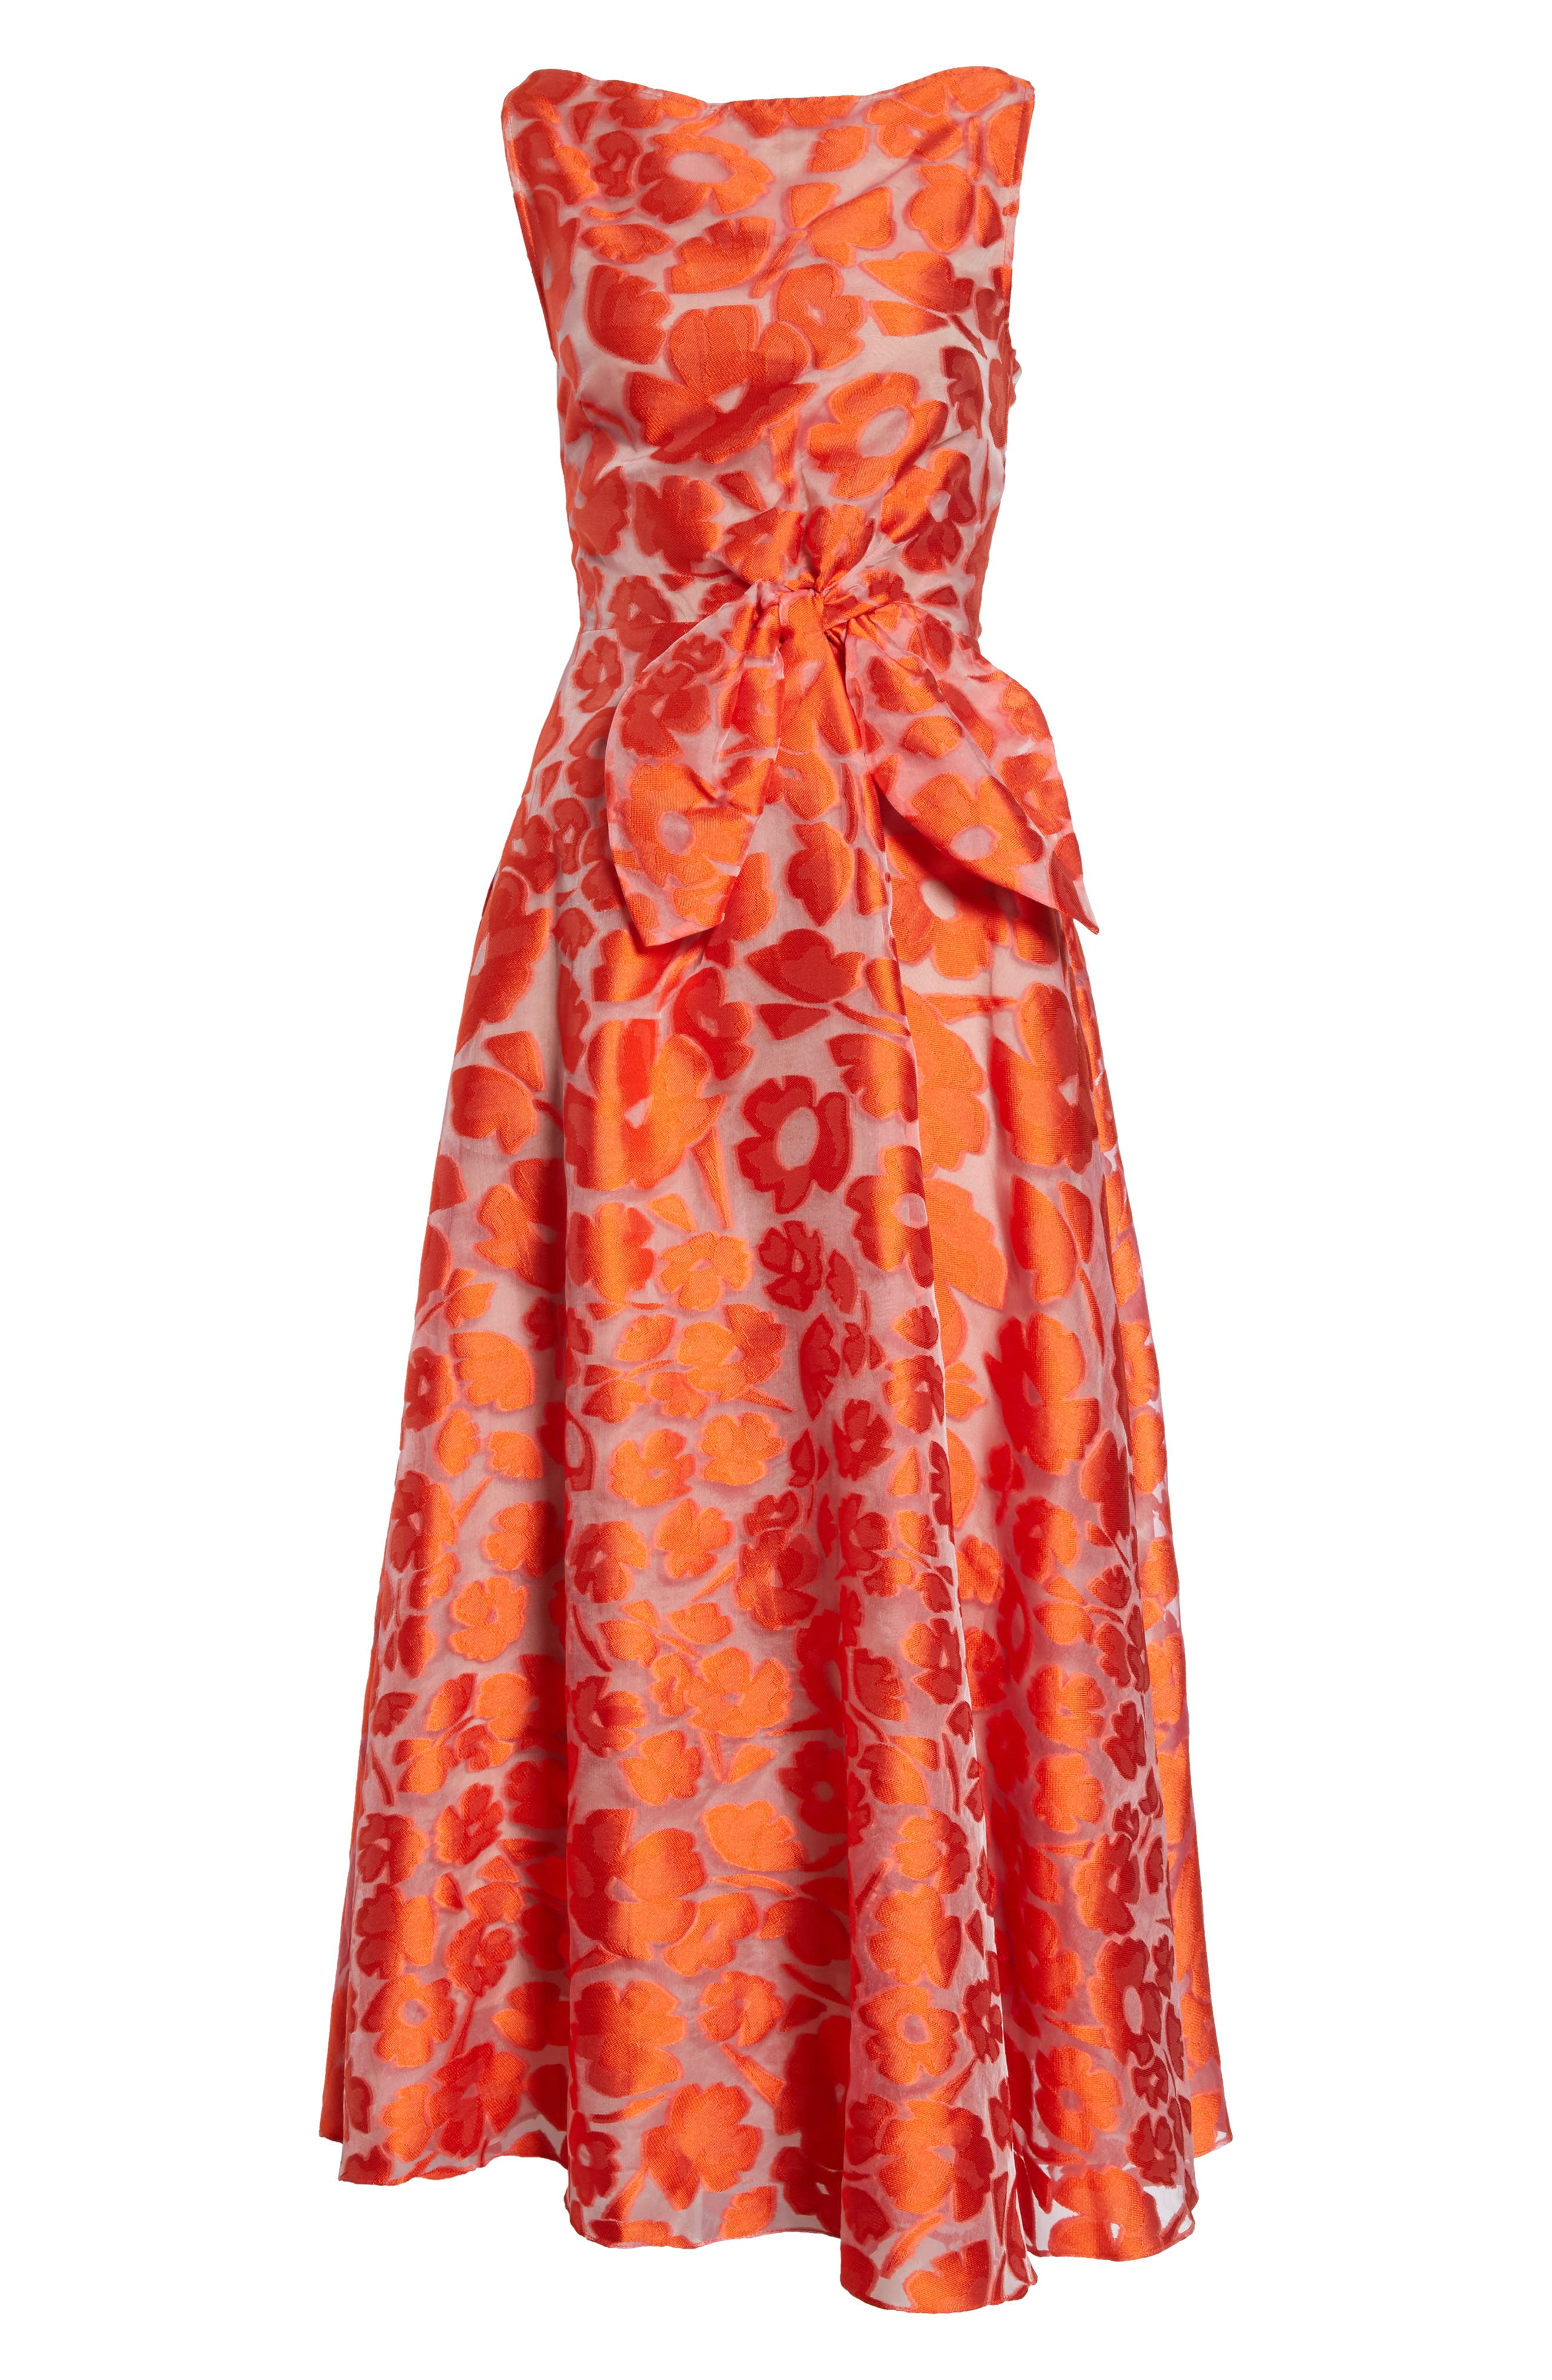 Bow Waist Tea Length Dress,                             Alternate thumbnail 8, color,                             Vermillion